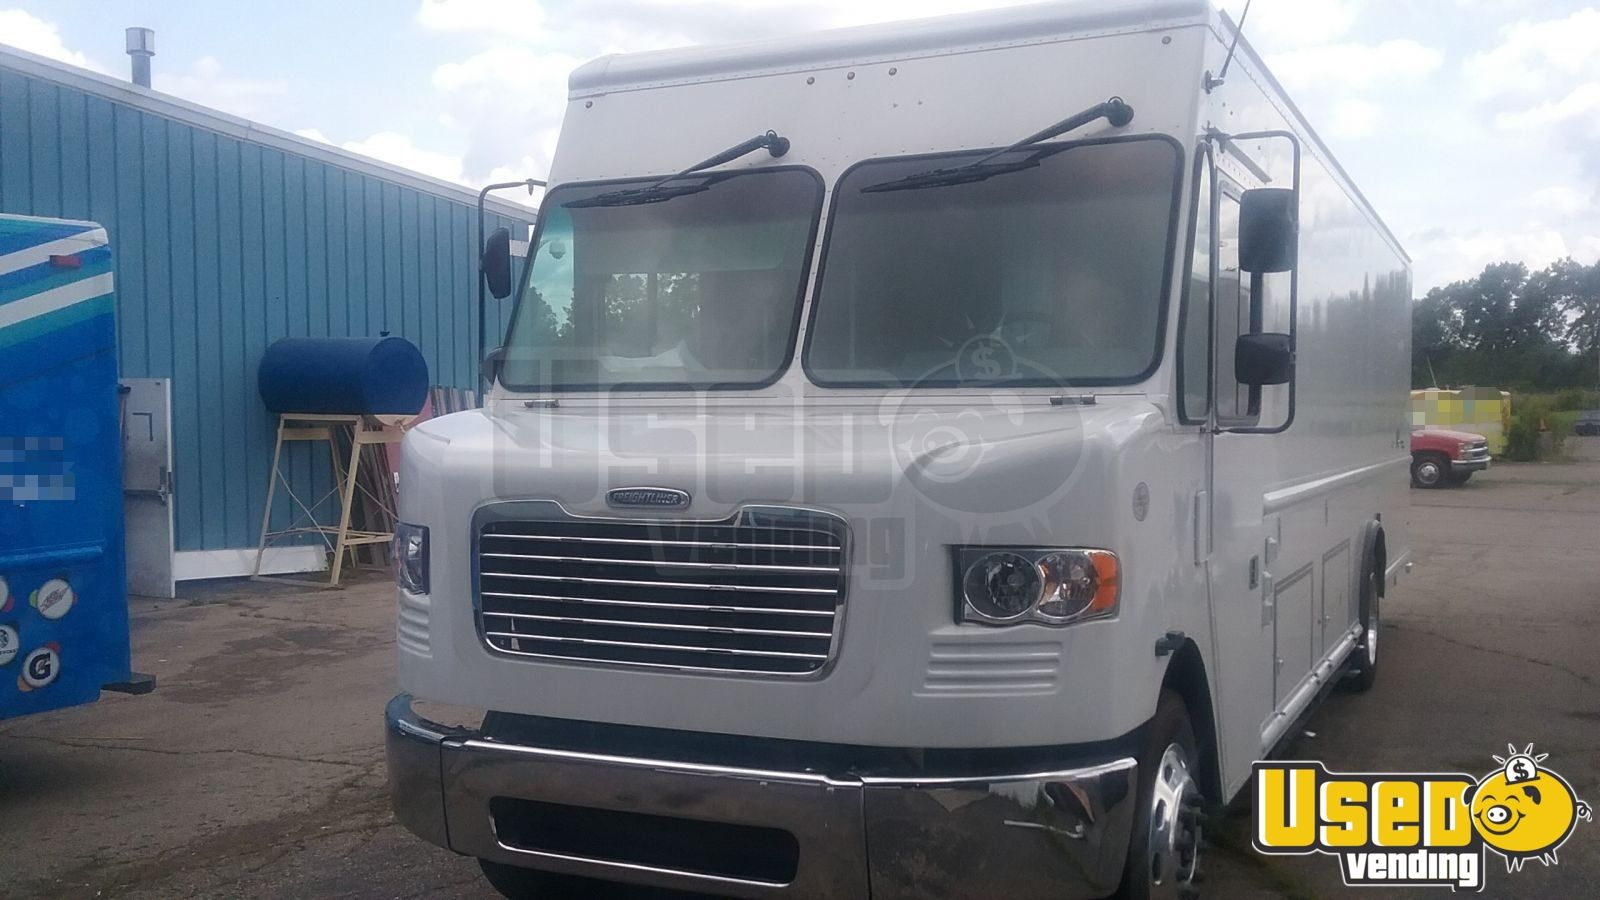 All-purpose Food Truck 7 Florida Diesel Engine for Sale - 7